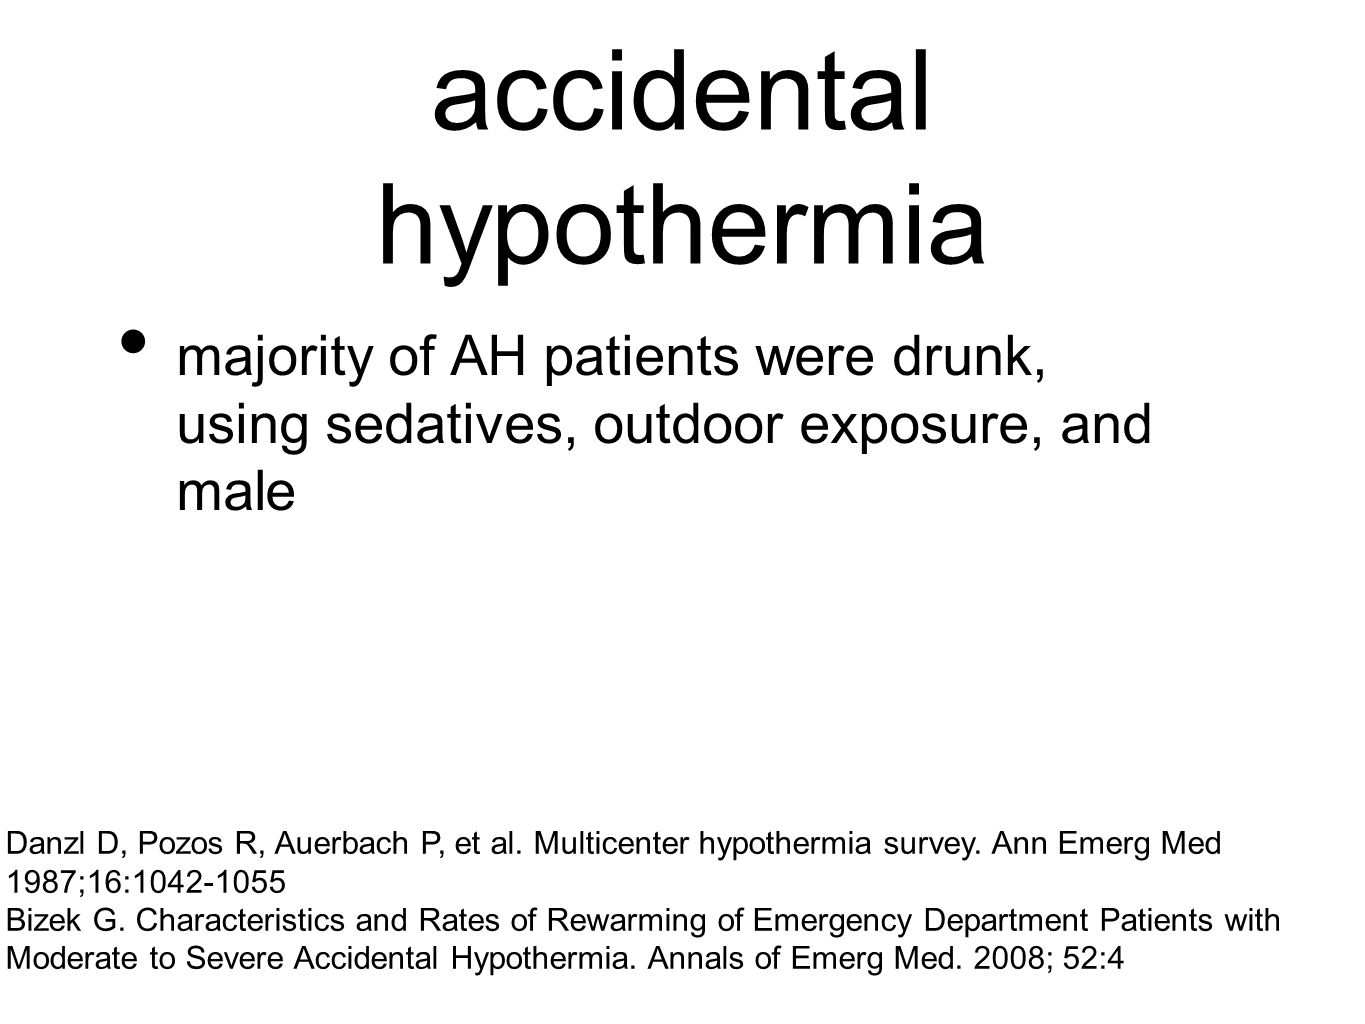 when should resuscitation be withheld in the ED / prognostic factors.